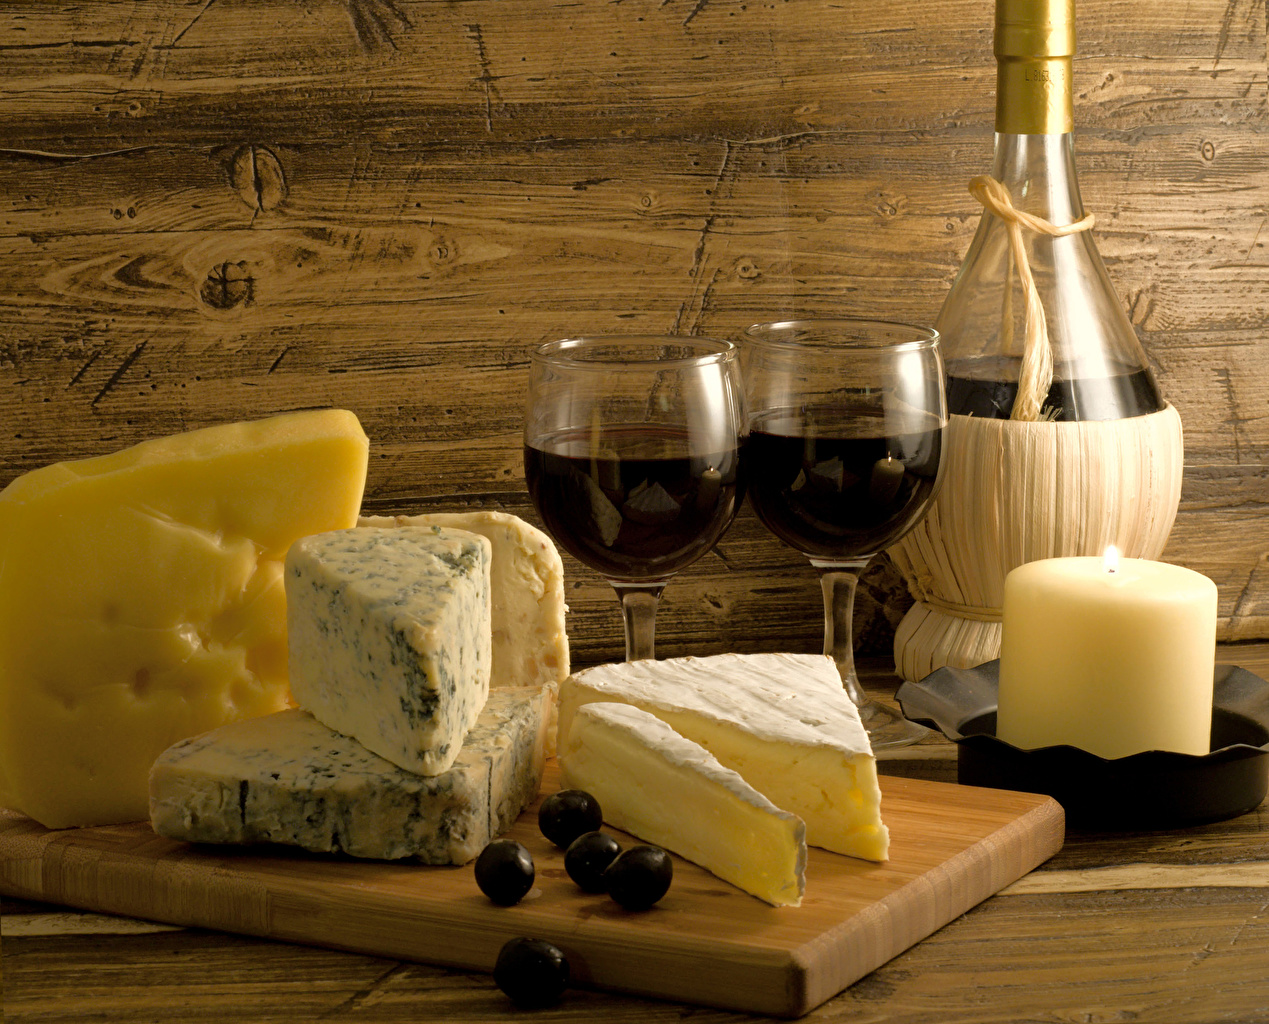 Pictures Wine Olive Cheese Food Candles bottles Stemware Cutting board Still-life Bottle